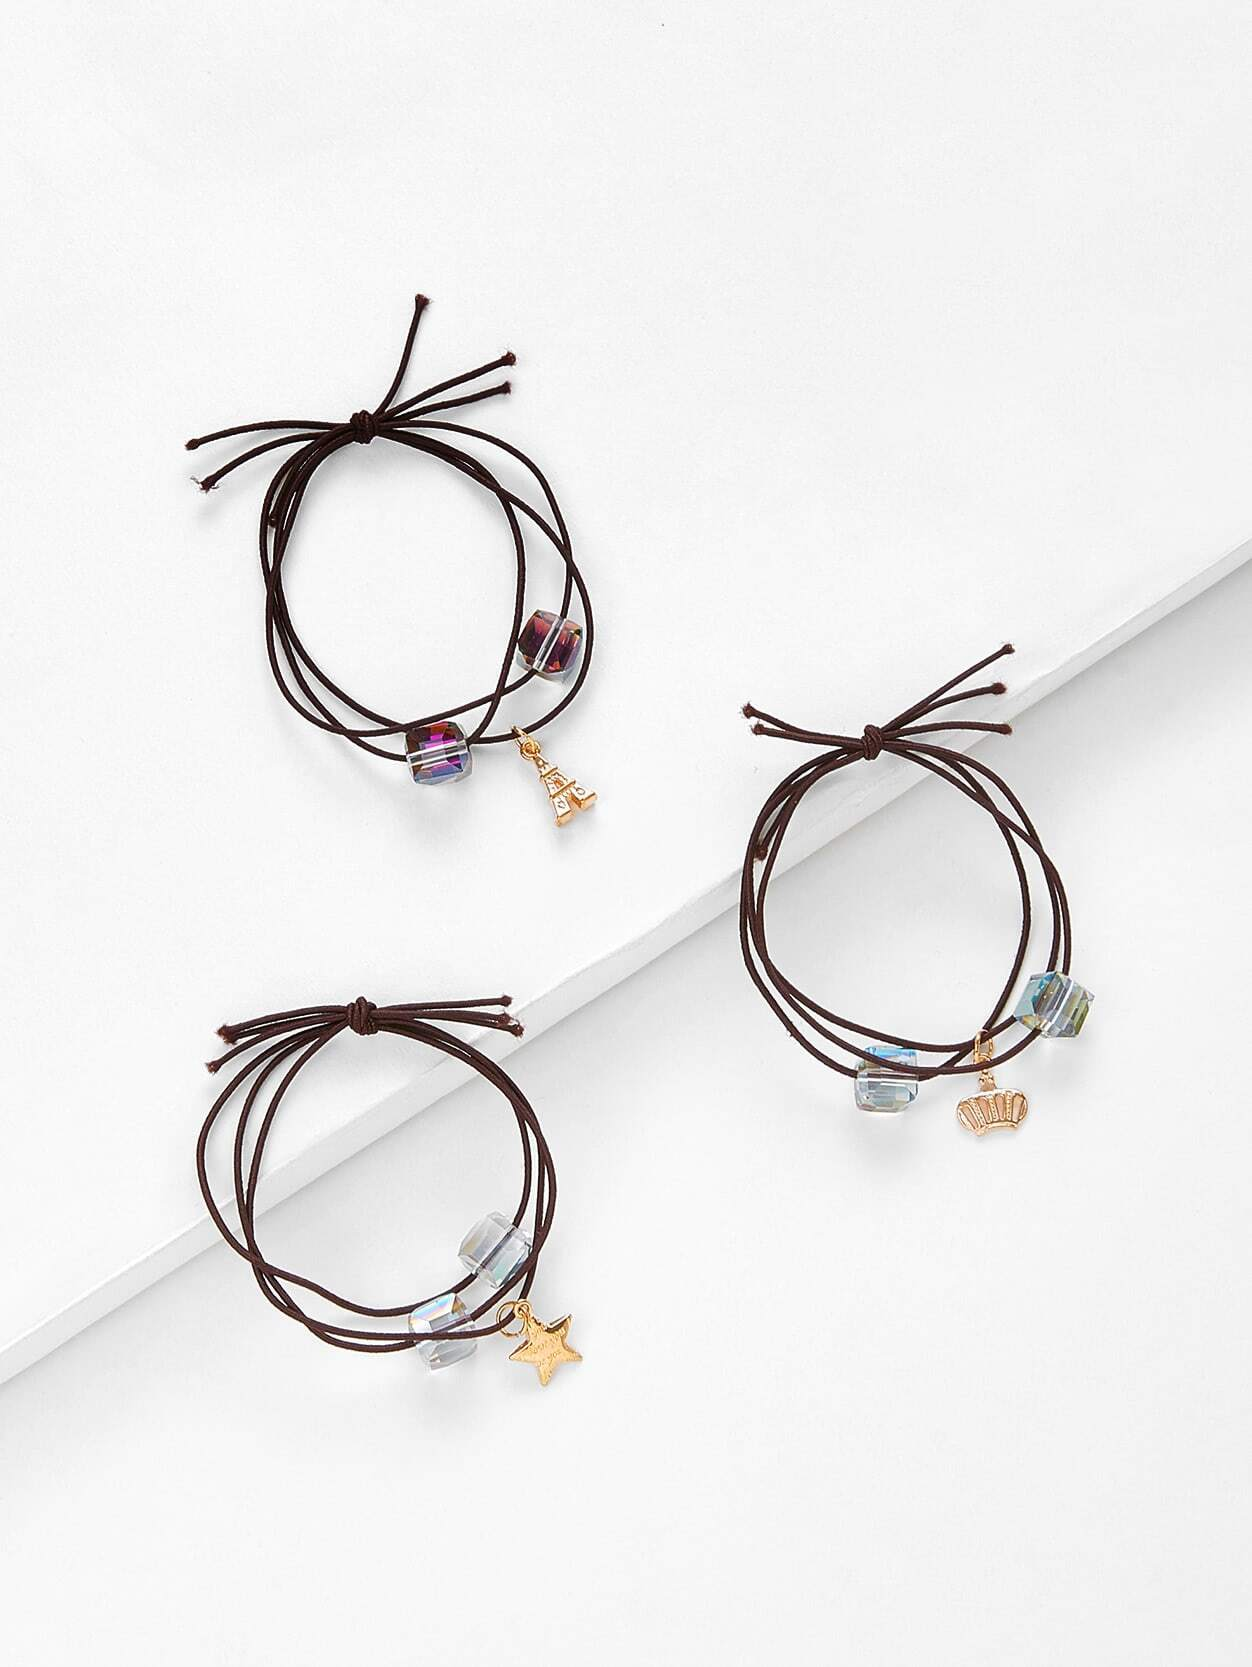 Metal Charm Hair Tie 3pcs цена и фото